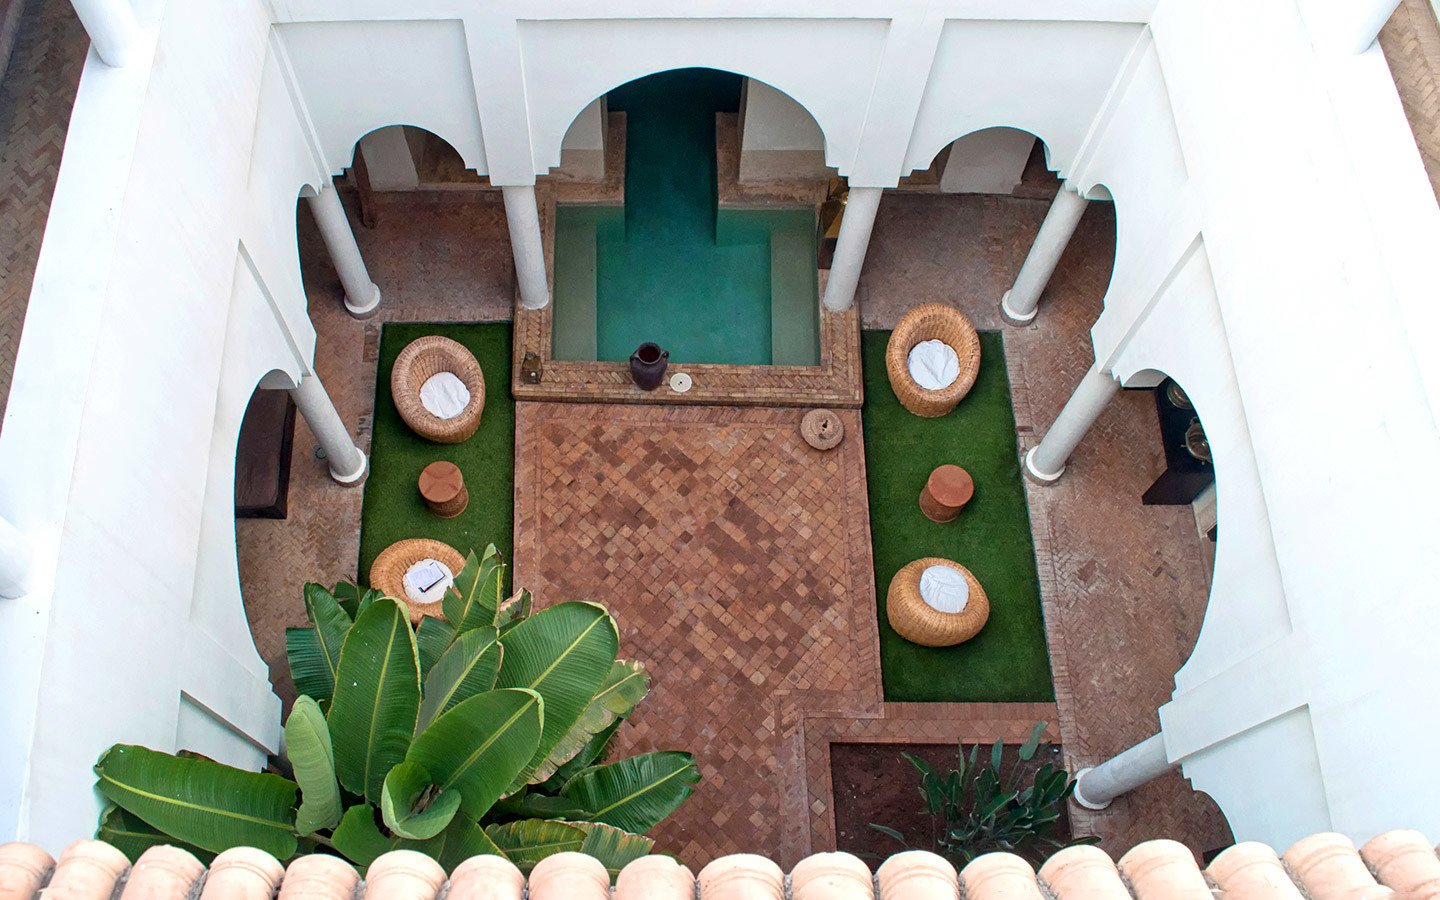 Courtyard at Riad Capaldi in the medina of Marrakech, Morocco